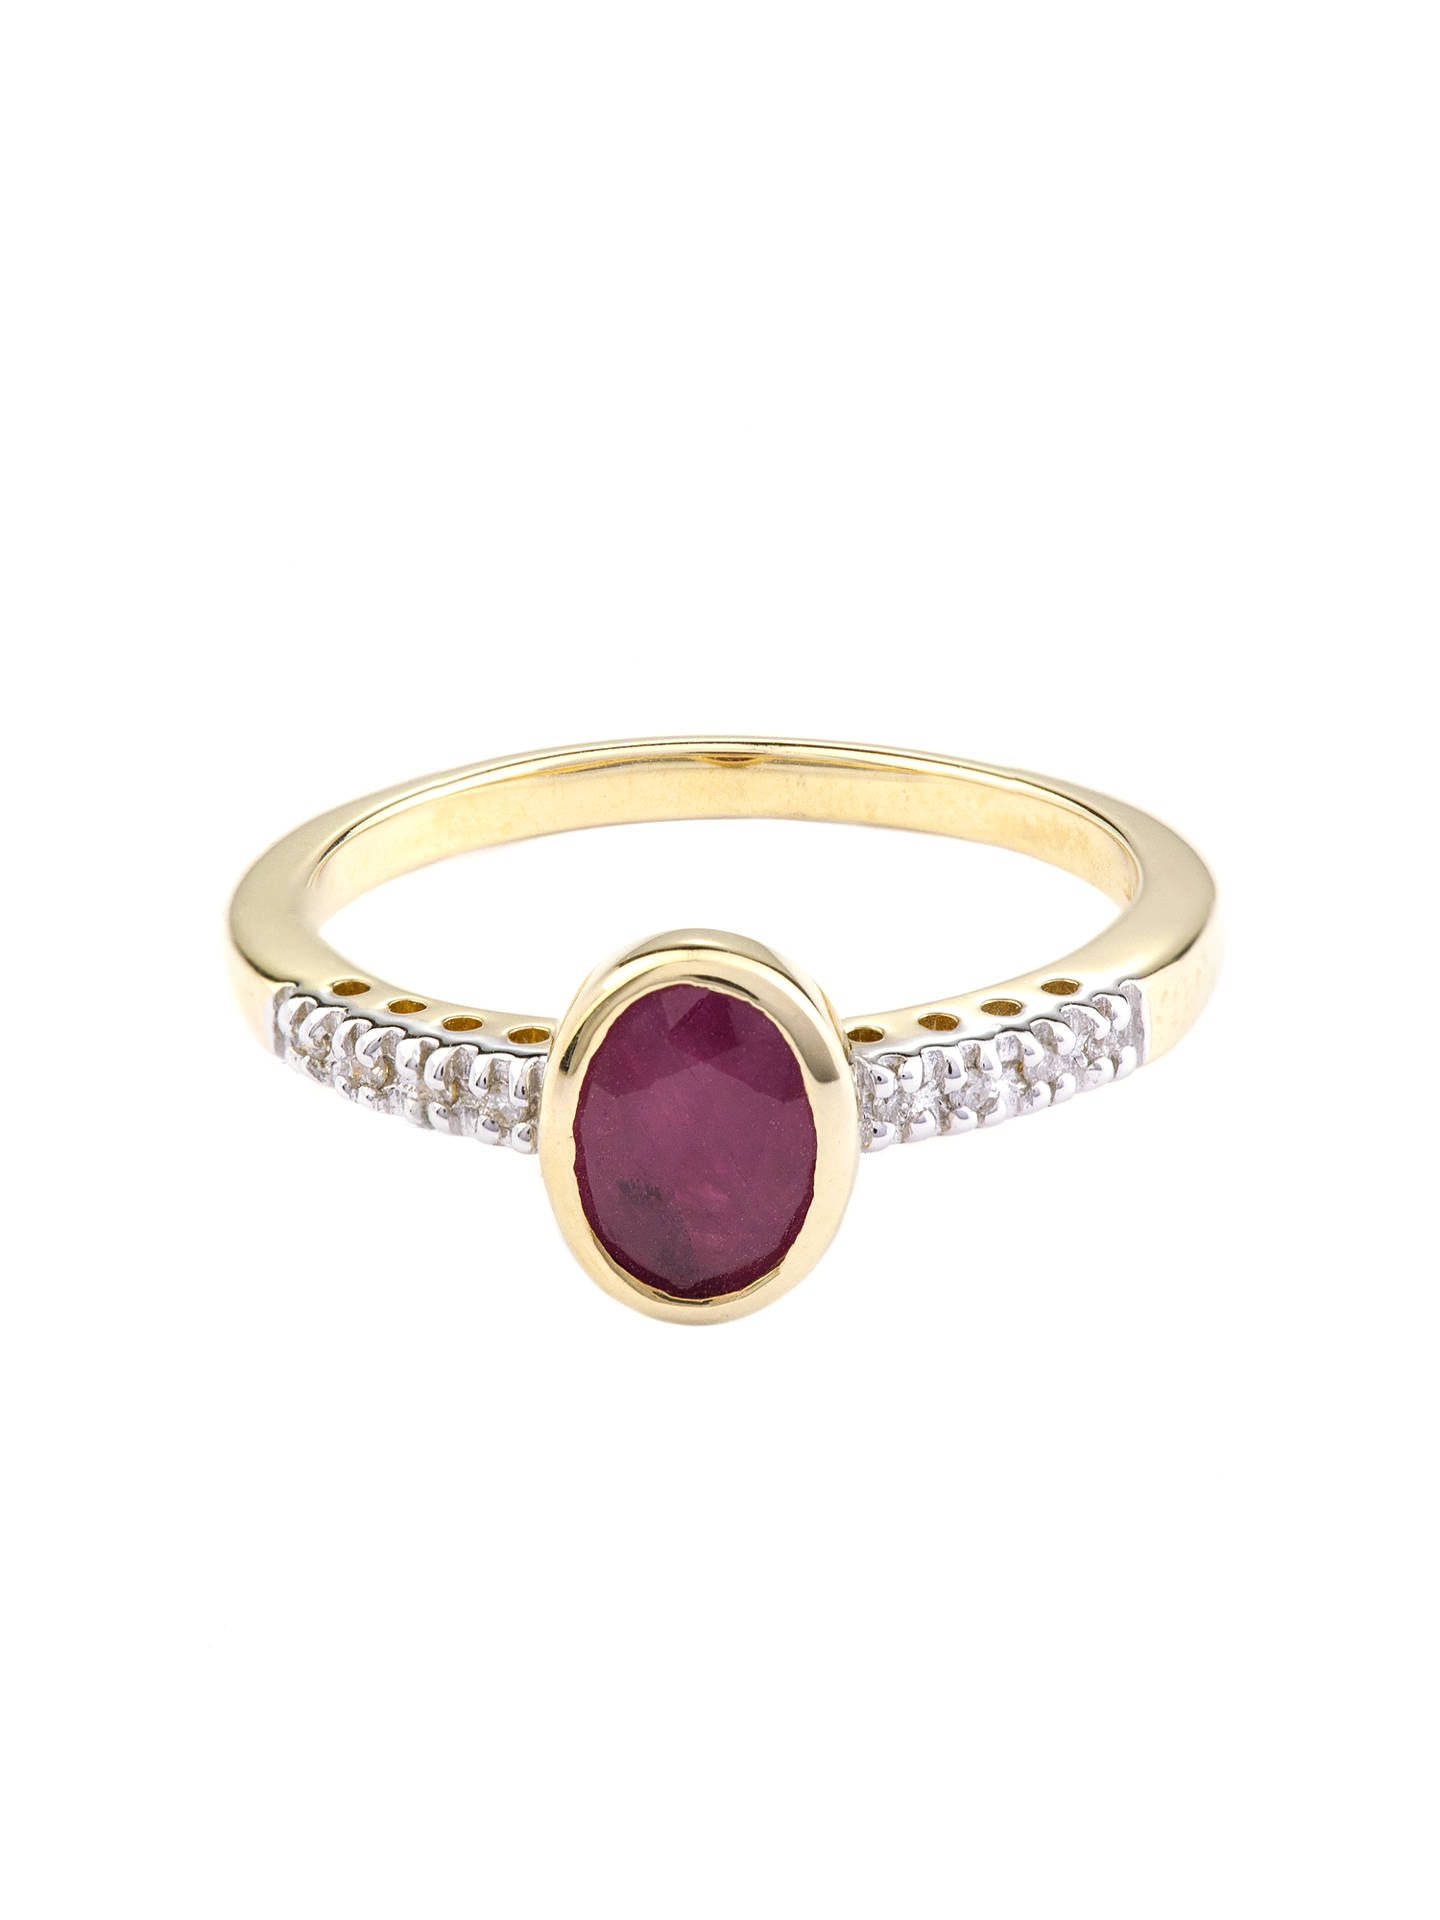 BuyA B Davis 9ct Gold Oval Rubover Diamond Shoulder Ring, Ruby Online at johnlewis.com